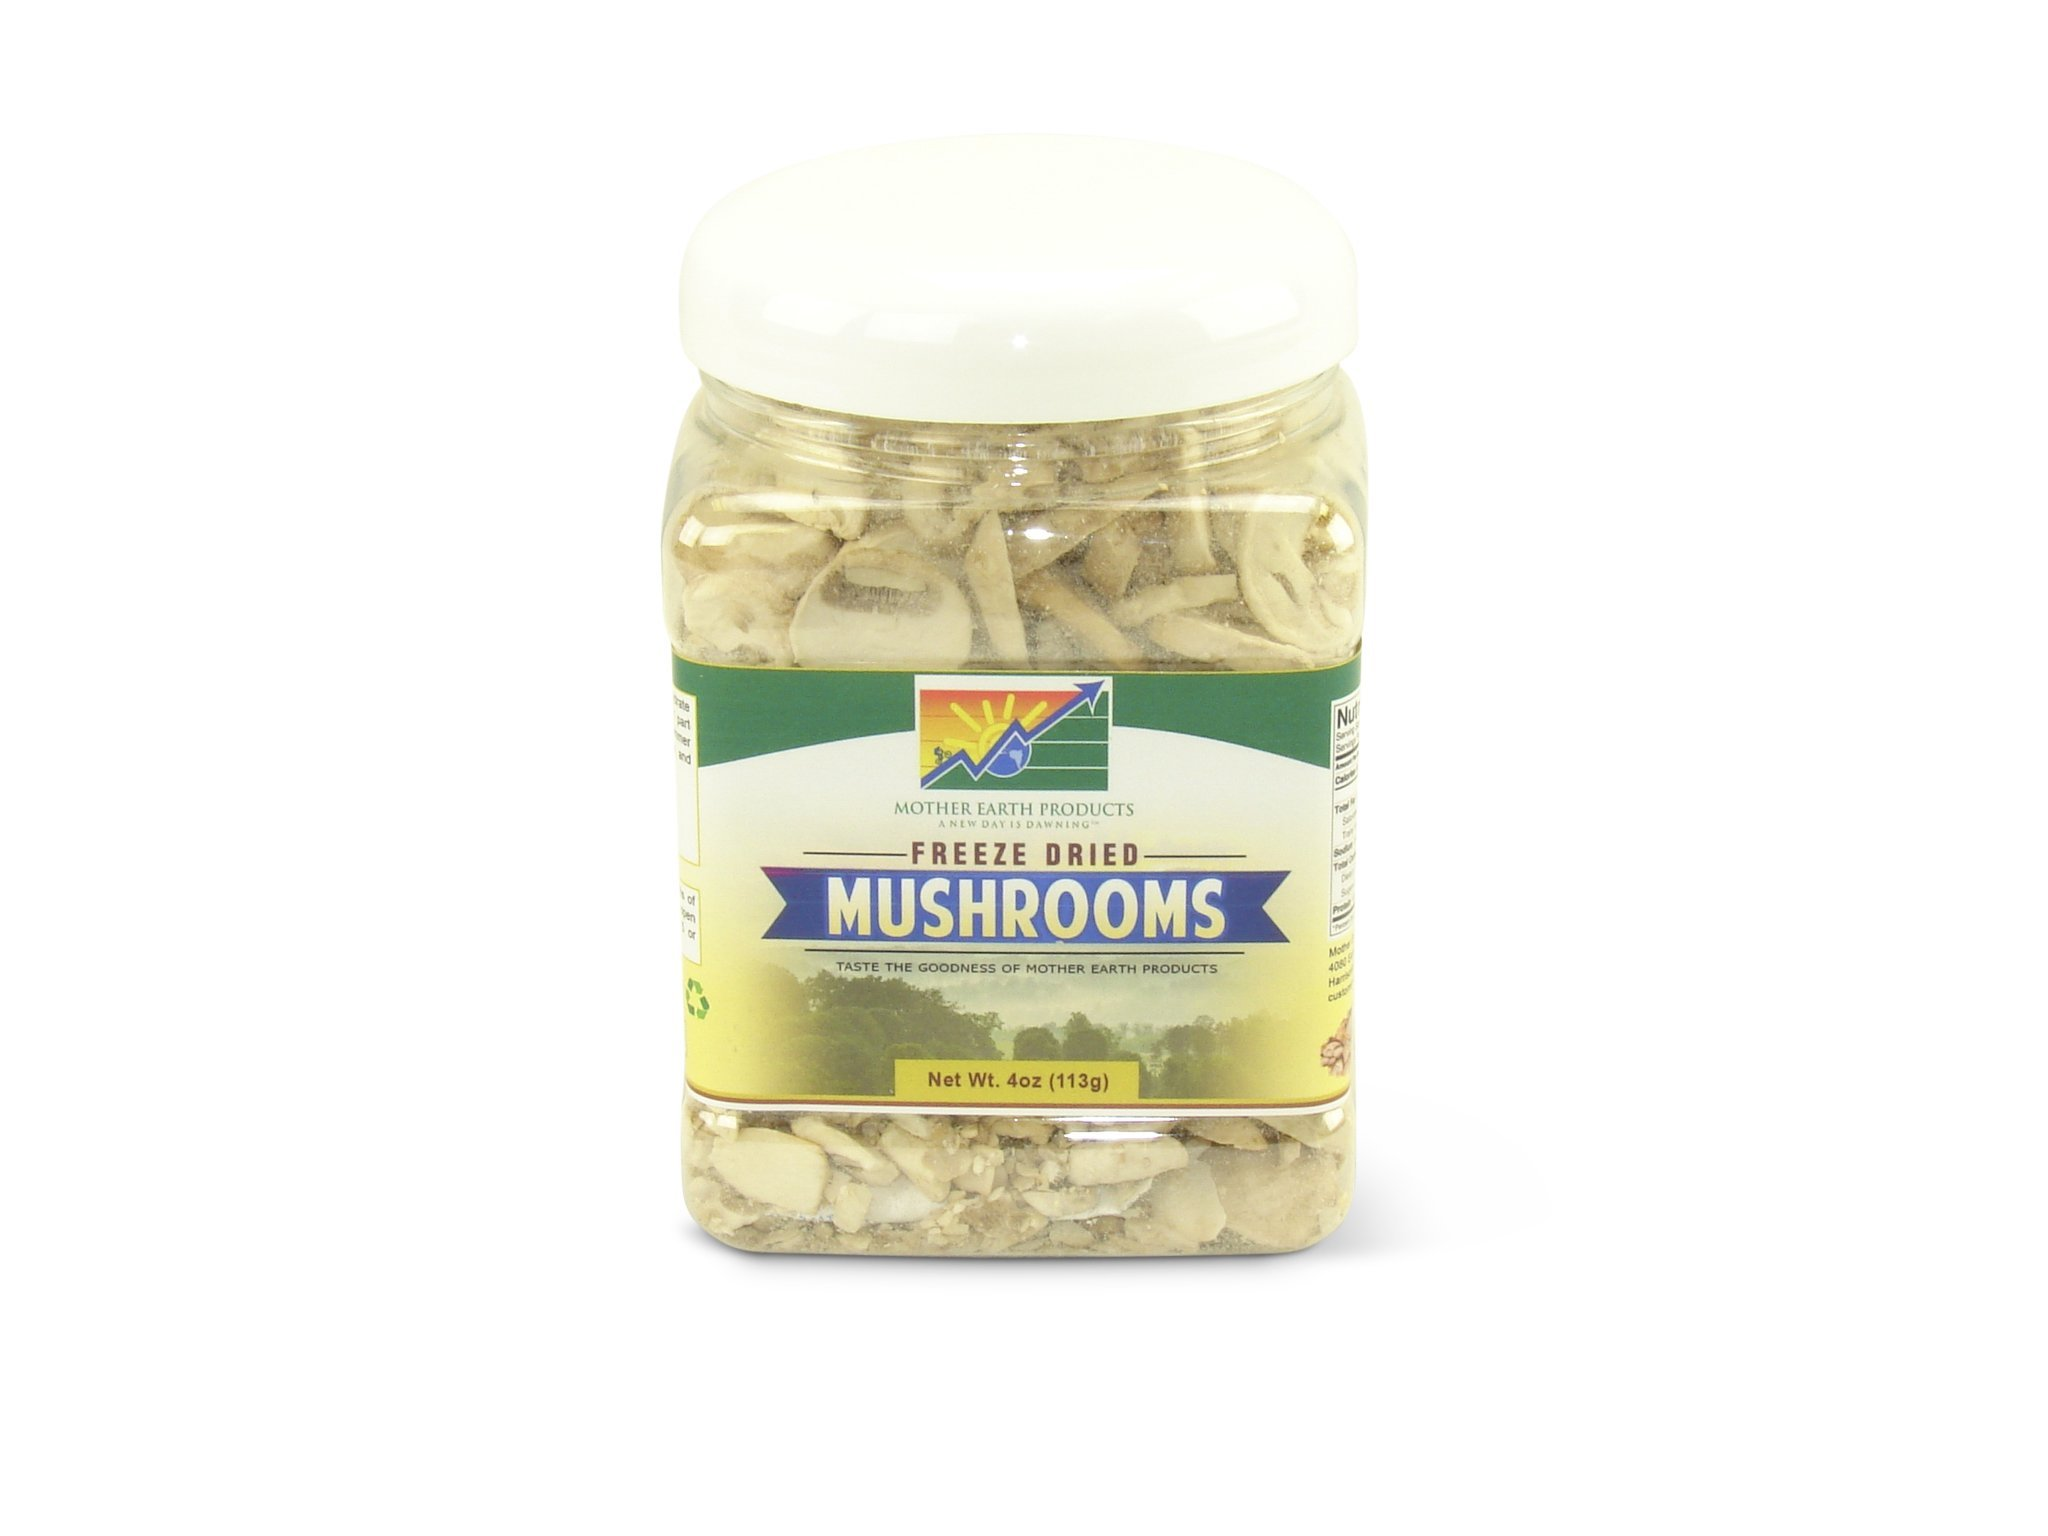 Mother Earth Products Freeze Dried Mushrooms, Quart Jar by Mother Earth Products (Image #1)